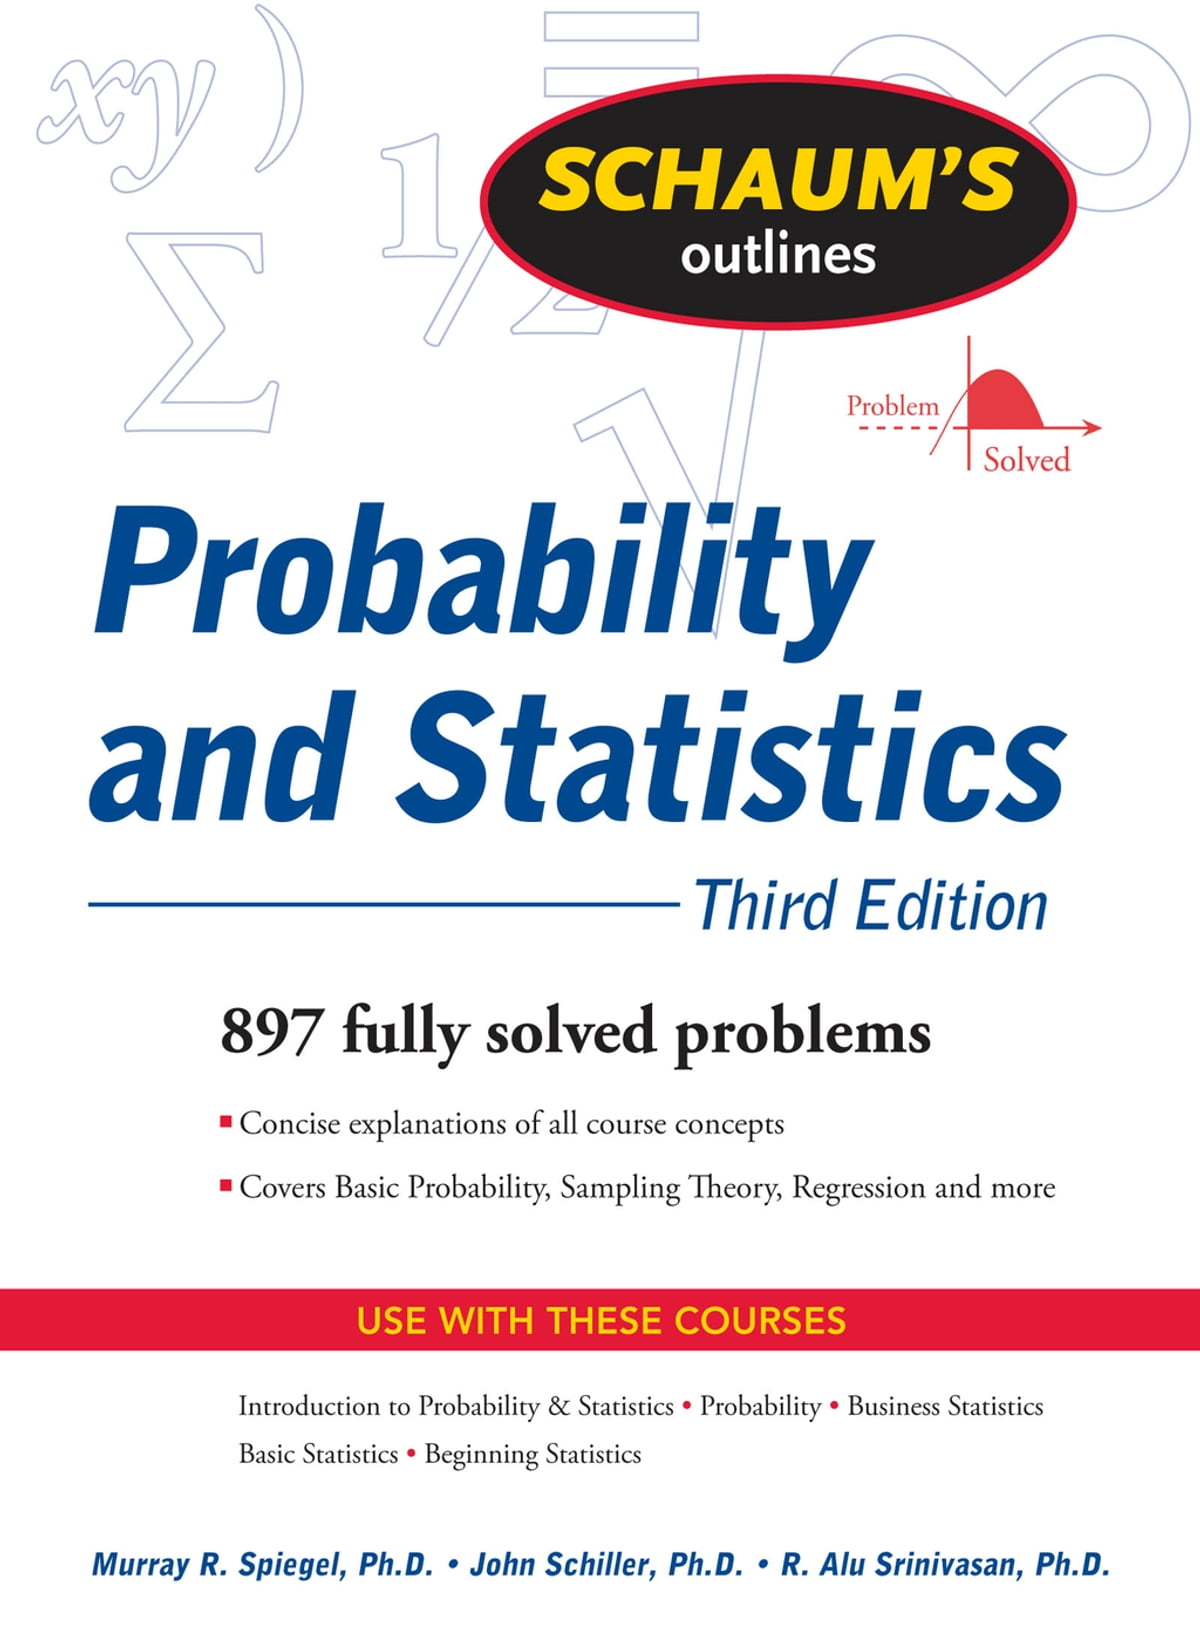 Schaums Outline of Probability and Statistics 3/E (ENHANCED EBOOK) eBook by  John J. Schiller Jr. - 9780071771047 | Rakuten Kobo